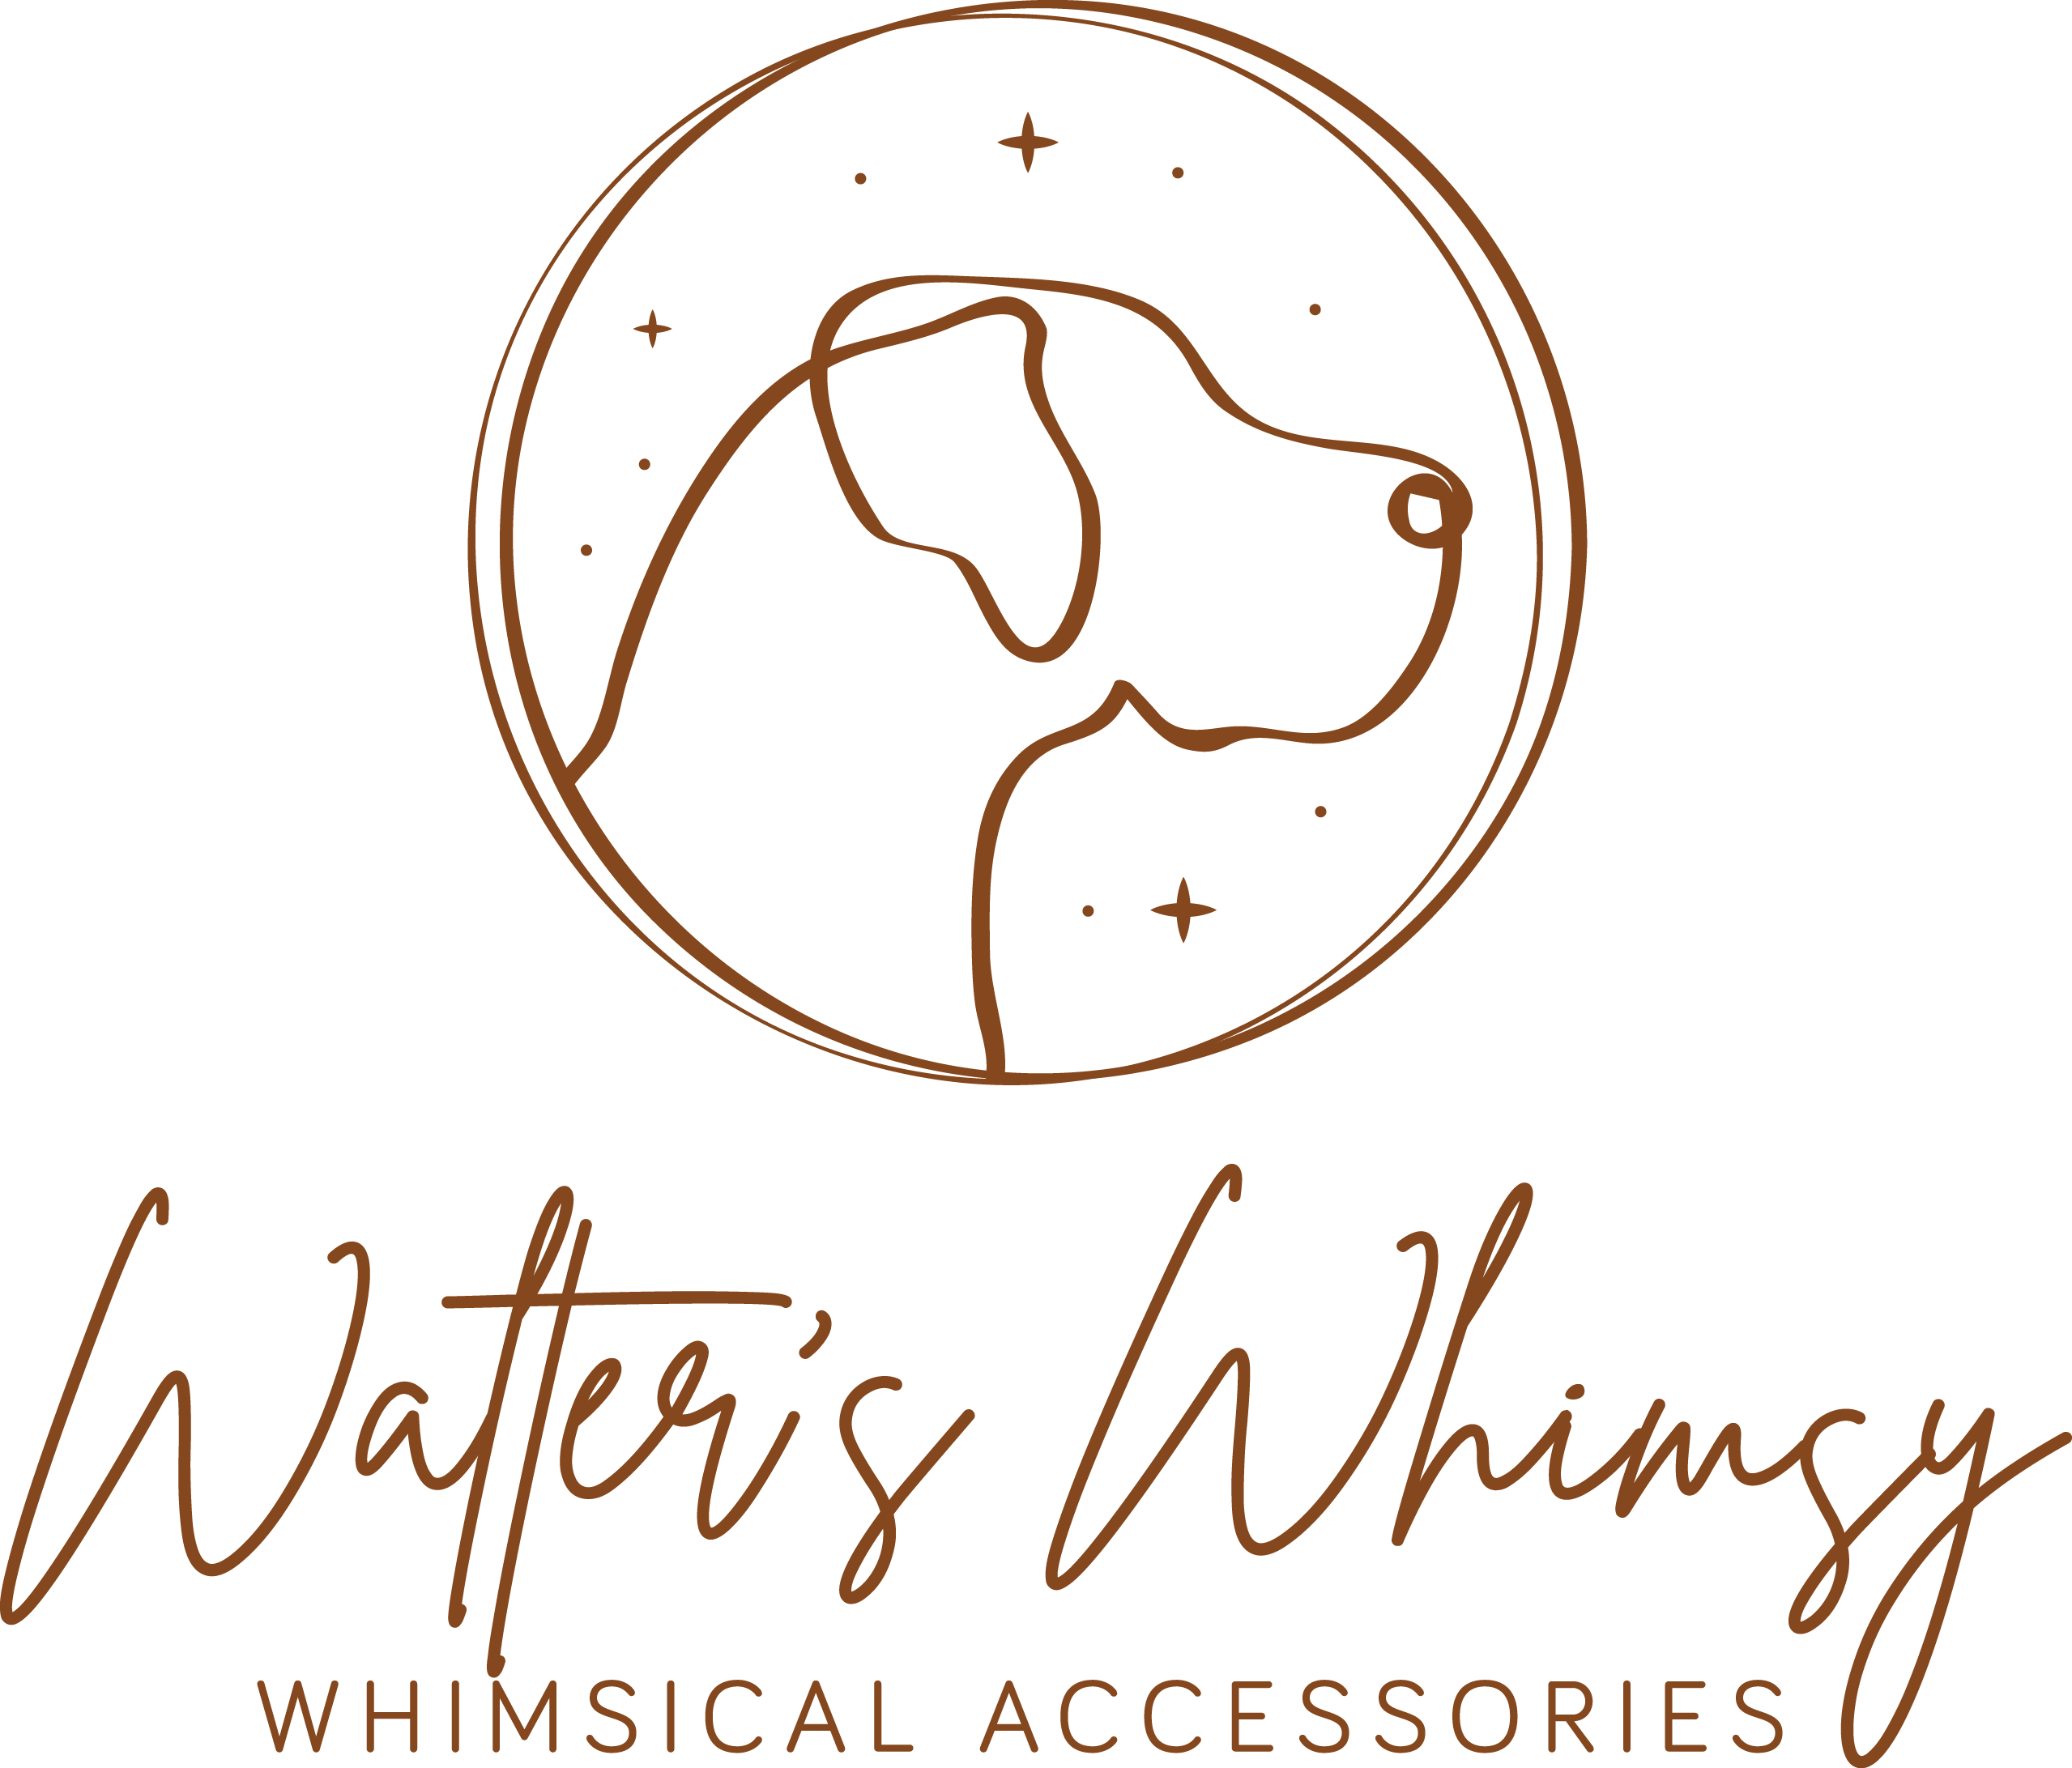 Whimsical accessories and love of dogs! Looking for a creative logo that blends both.